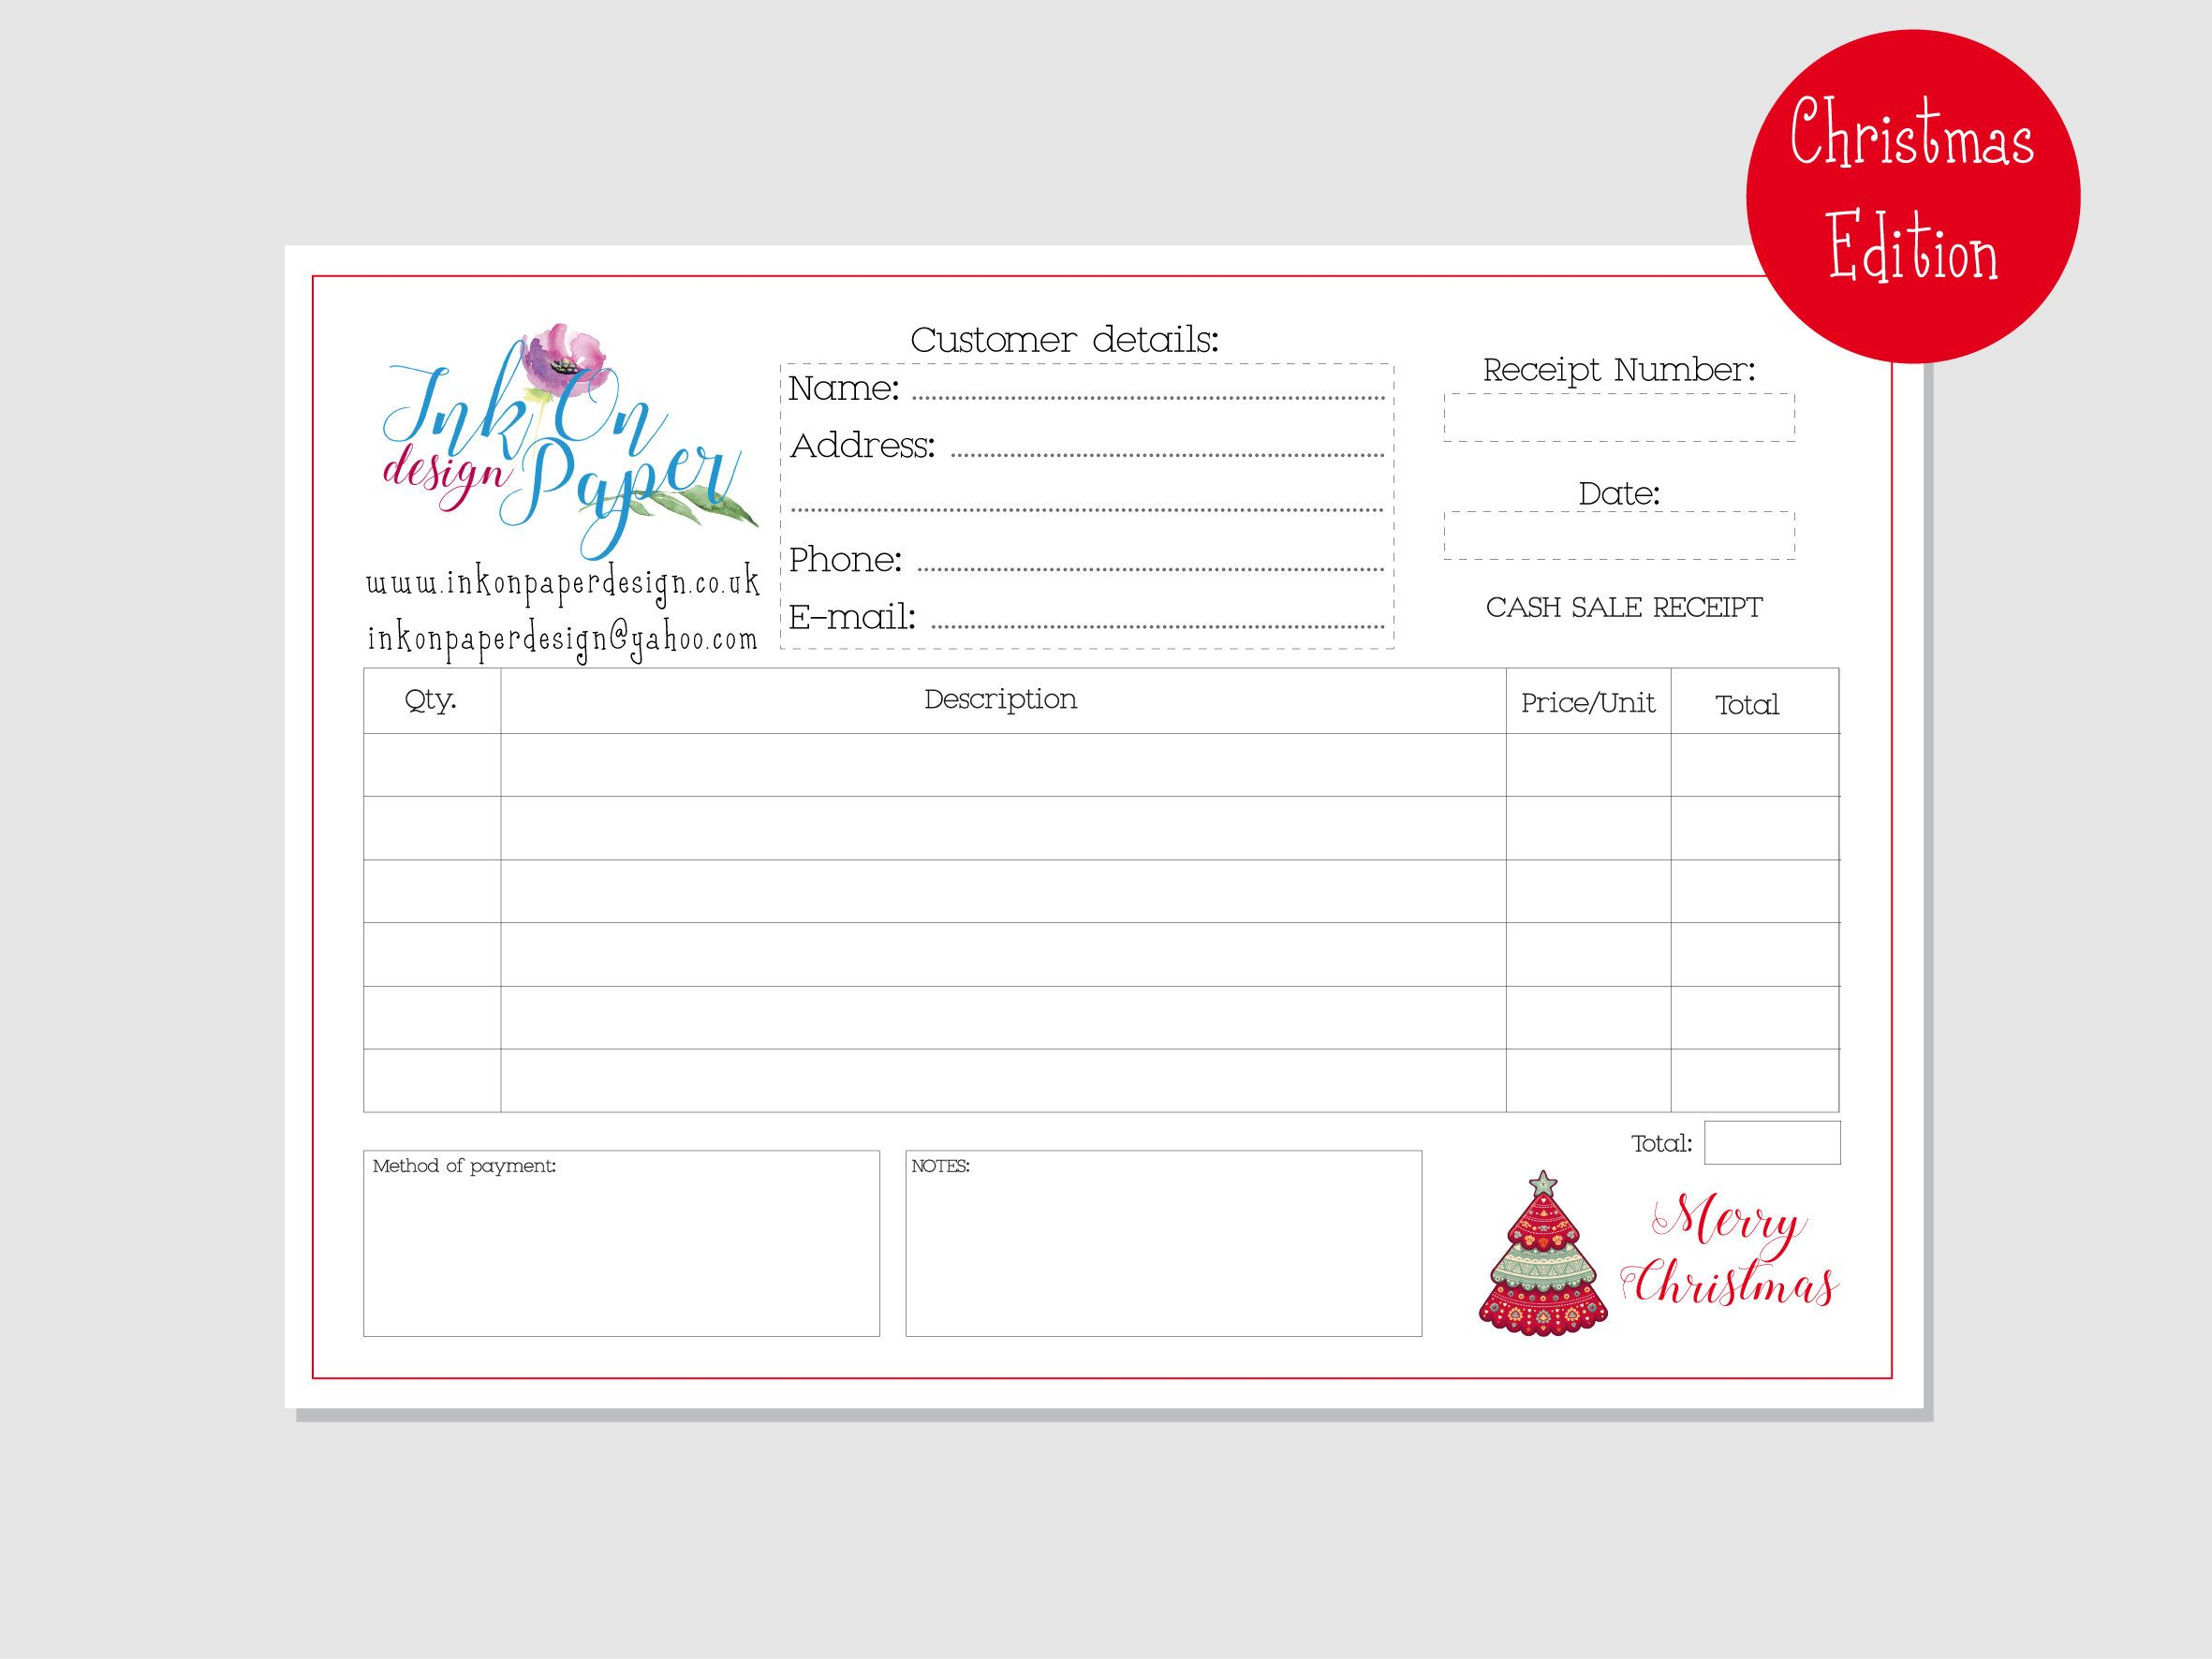 Christmas Fairs Receipt Book Personalised Order Book Christmas Edition Petty Cash Office S Business Binders Small Business Organization Business Quotes